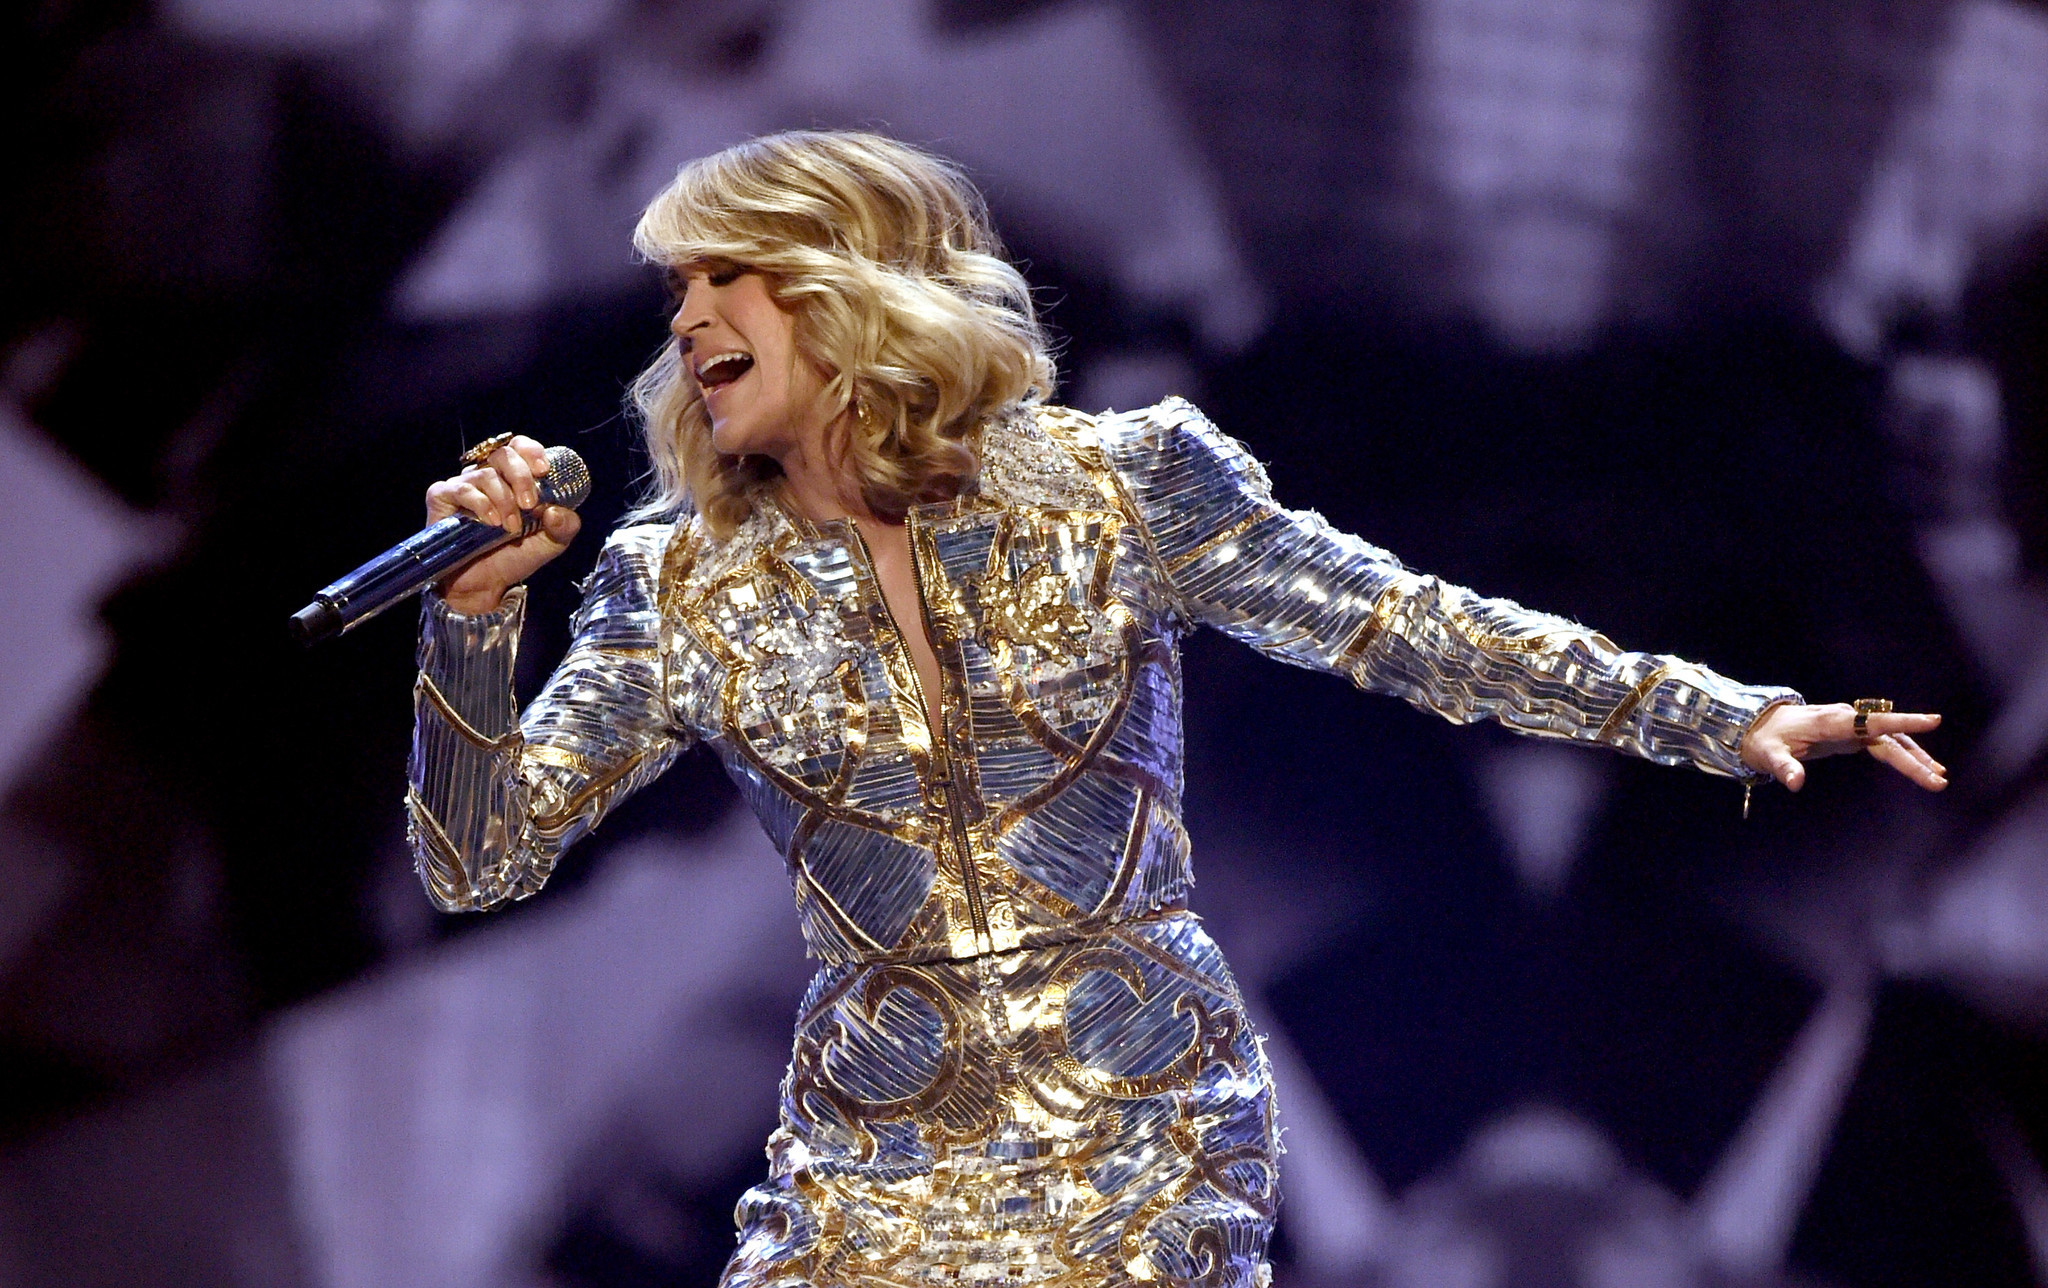 Carrie Underwood performs at the 52nd Academy of Country Music Awards in April 2017. (Ethan Miller / Getty Images)